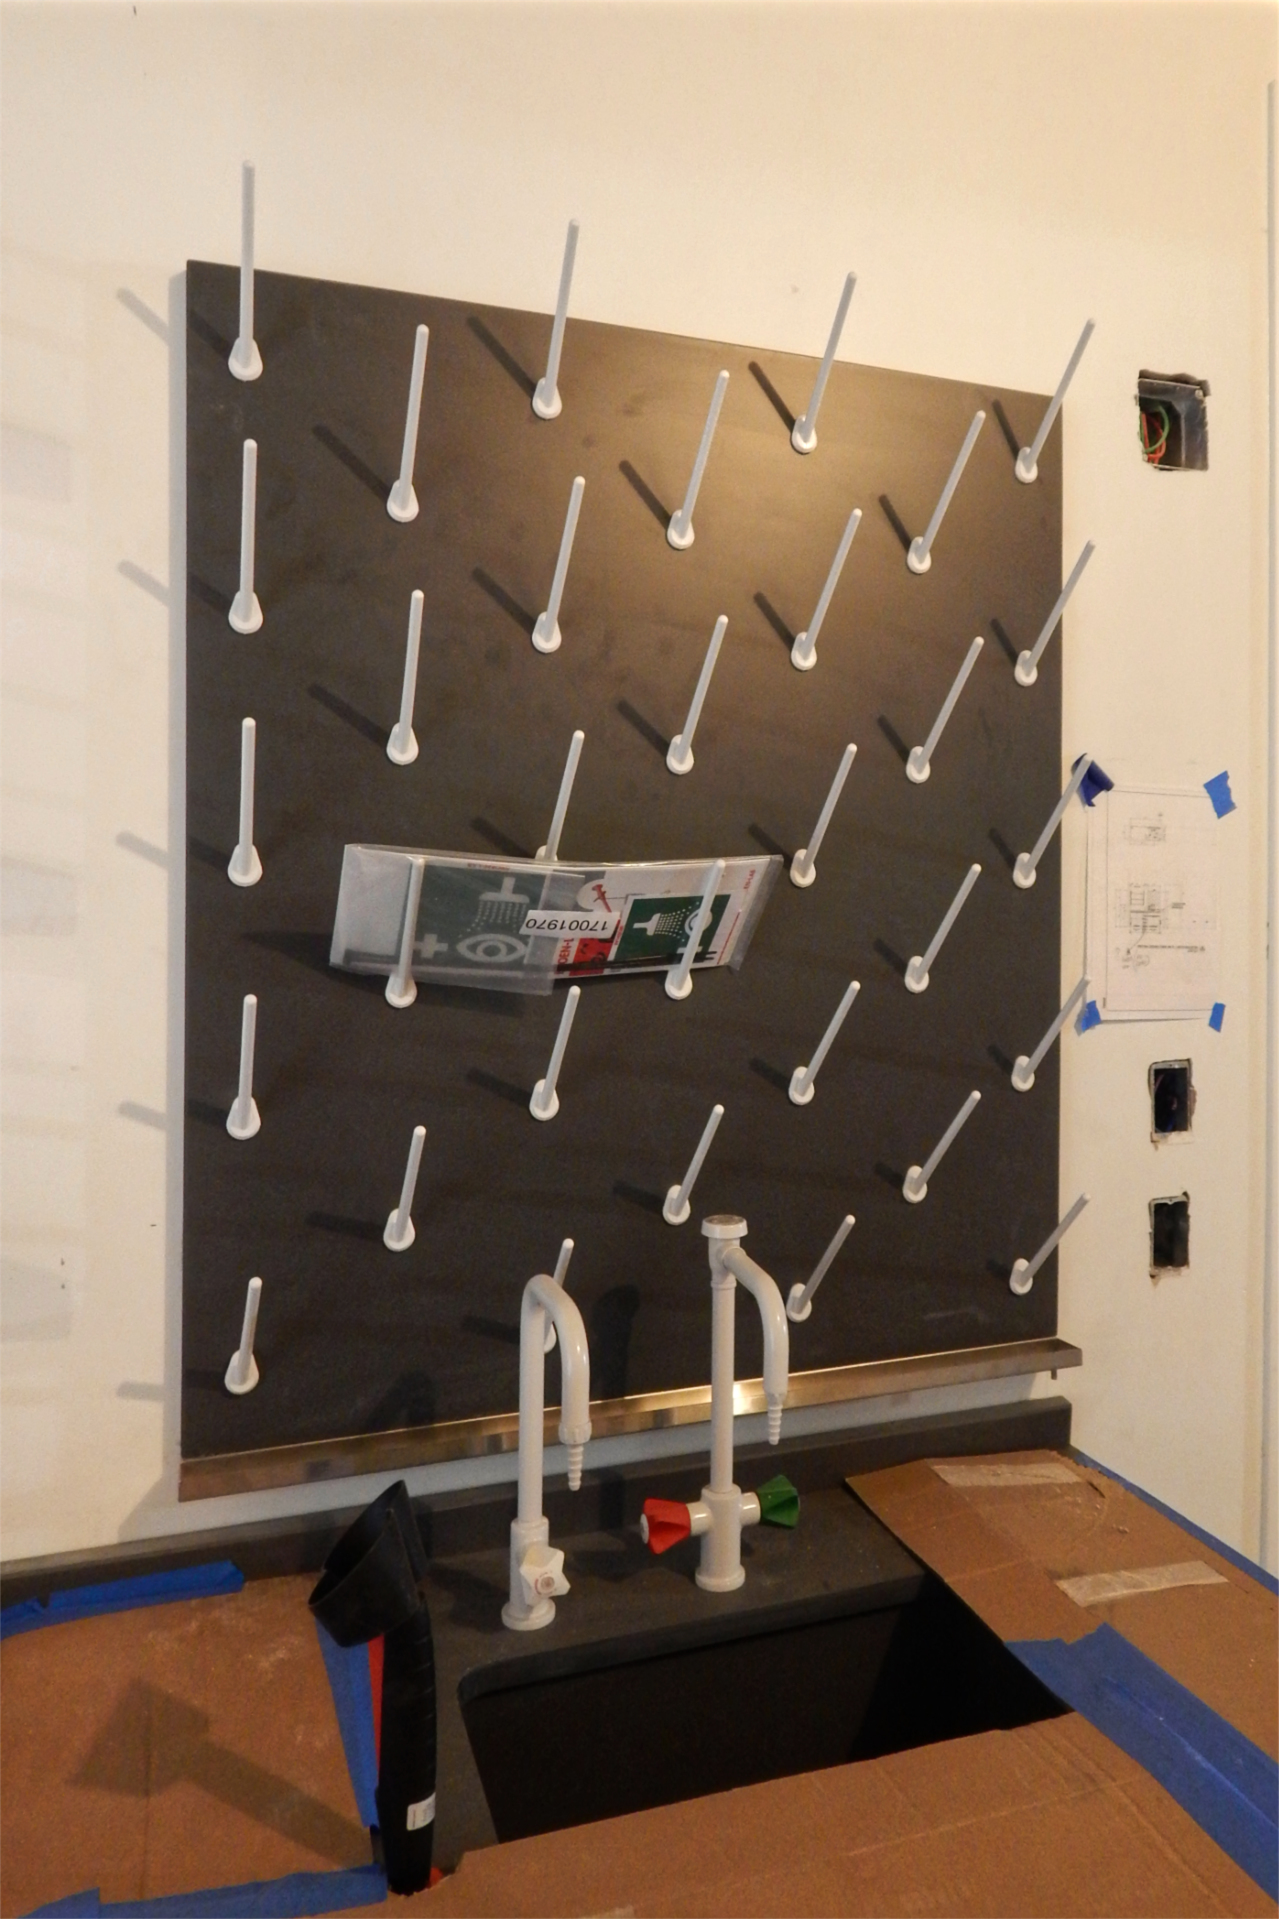 This pegboard will be used to dry lab vessels after washing. Note the gutter at the bottom of the board and its little drain at the right-hand end. (Doug Hubley/Bates College)